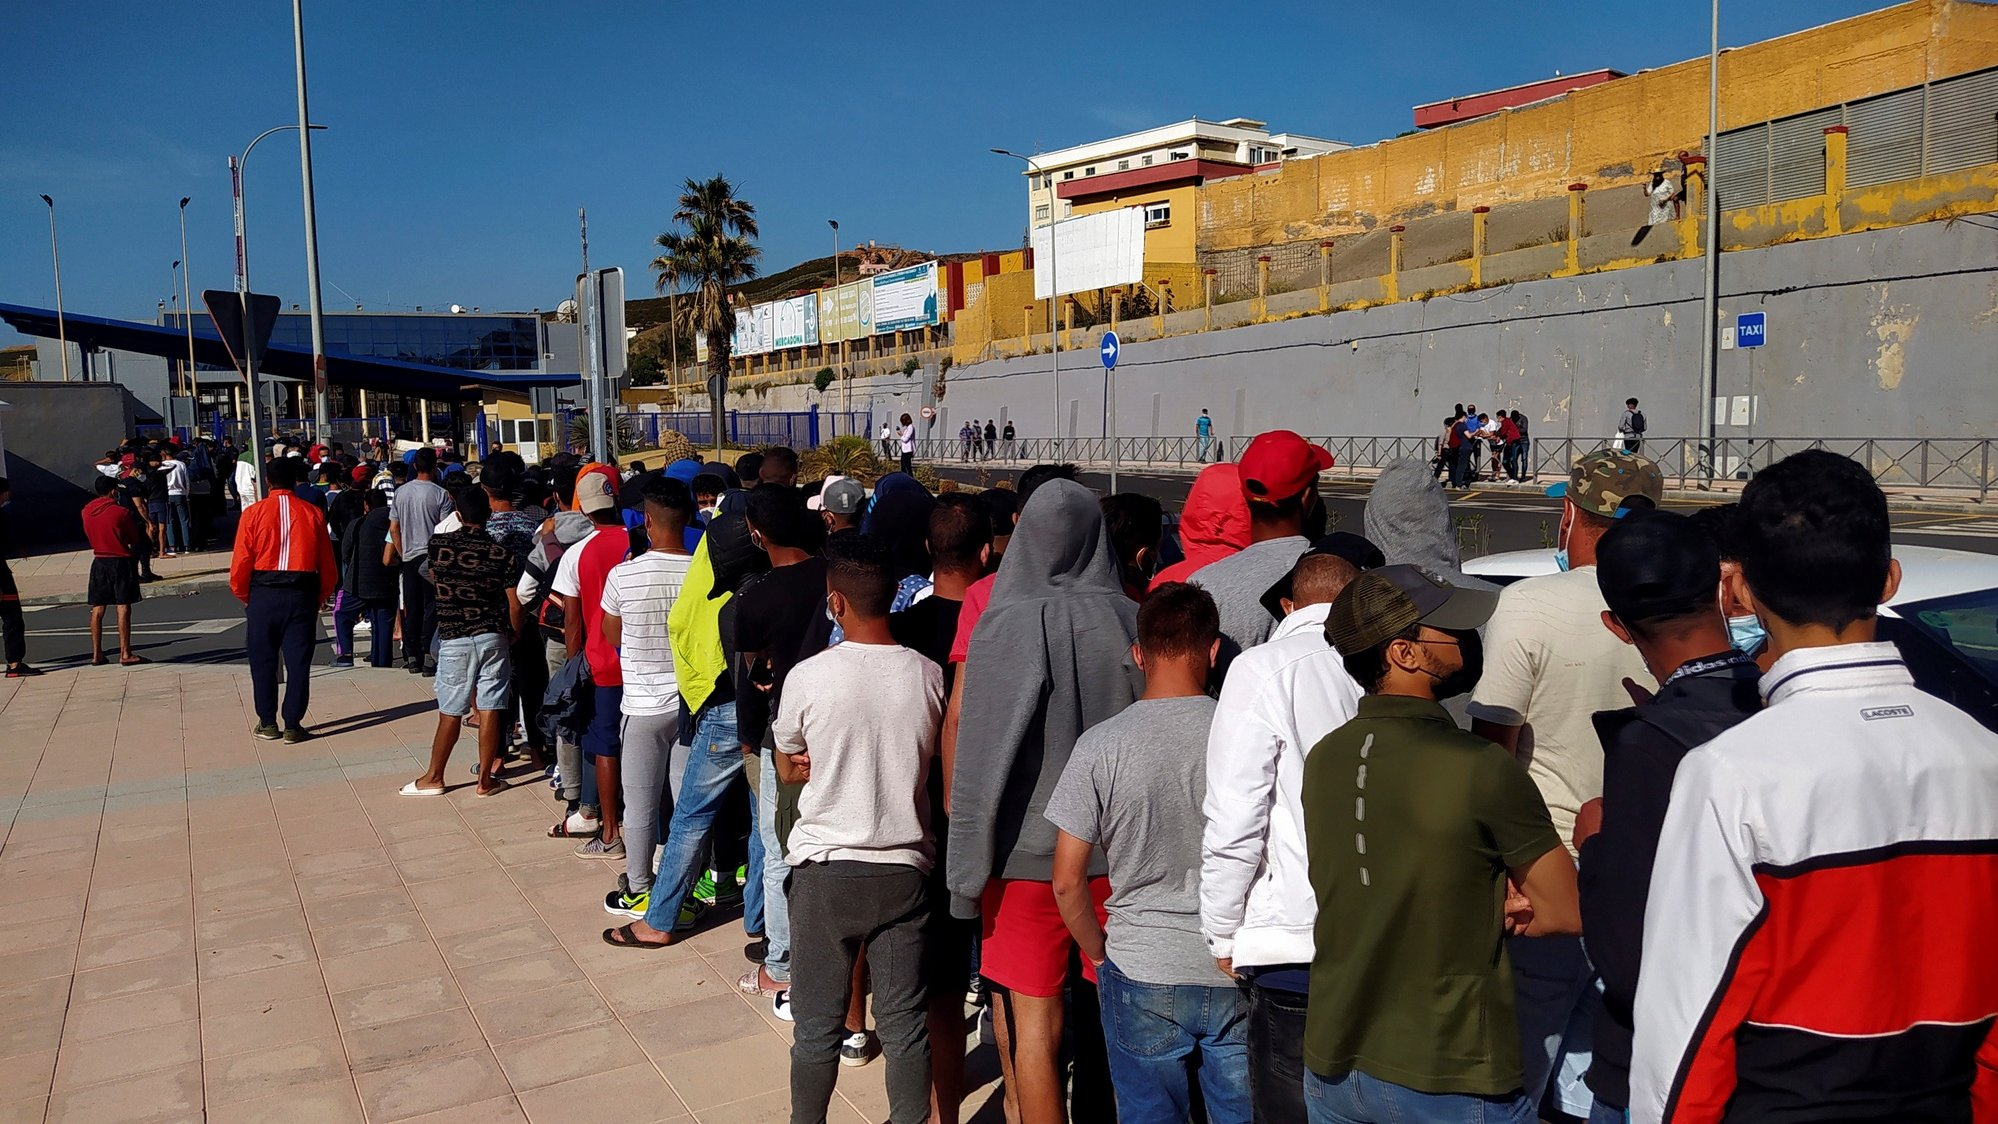 epa09242602 Moroccan migrants wait in a long queue in front of Asylum and Refuge Office at Tarajal border crossing in Ceuta, Spanish enclave in northern Africa, 02 June 2021. Most of the asylum seekers entered Ceuta on the last 17 and 18 May 2021, when some 10,000 people managed to reach Spain, mainly by sea, although some 8,000 of them came back to their country.  EPA/Reduan Dris